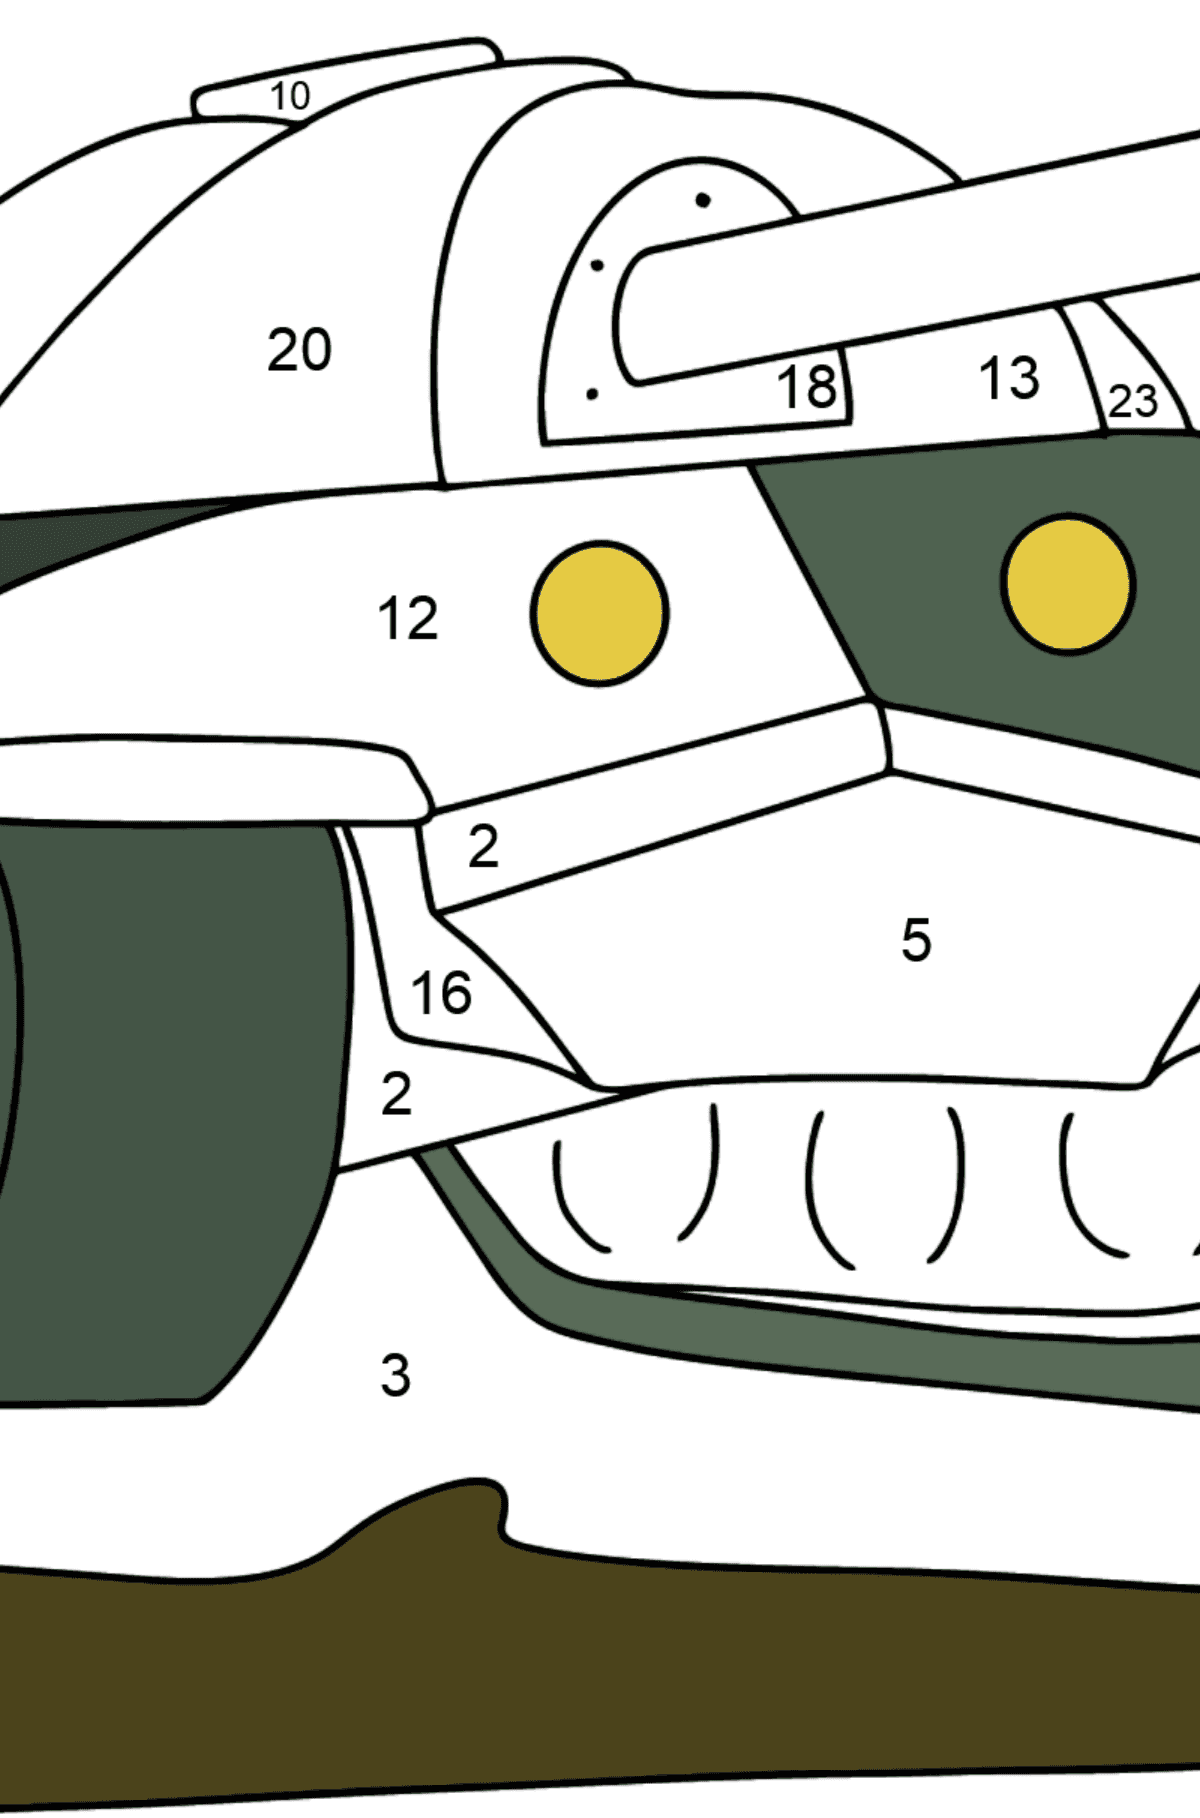 Tank IS 7 coloring page - Coloring by Numbers for Kids